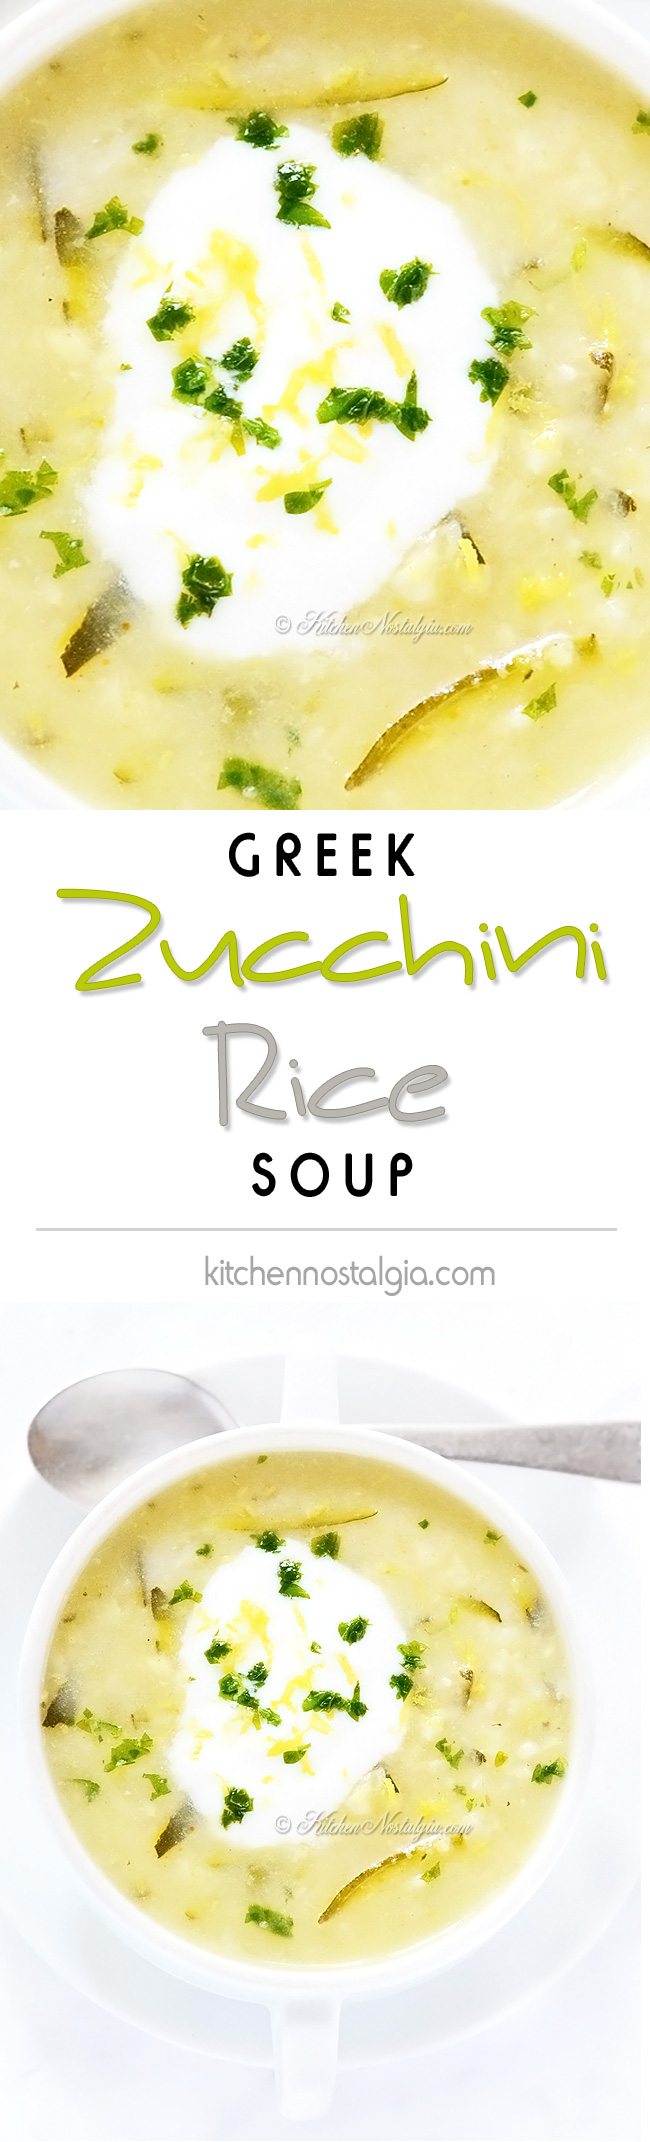 Zucchini Rice Soup - kitchennostalgia.com